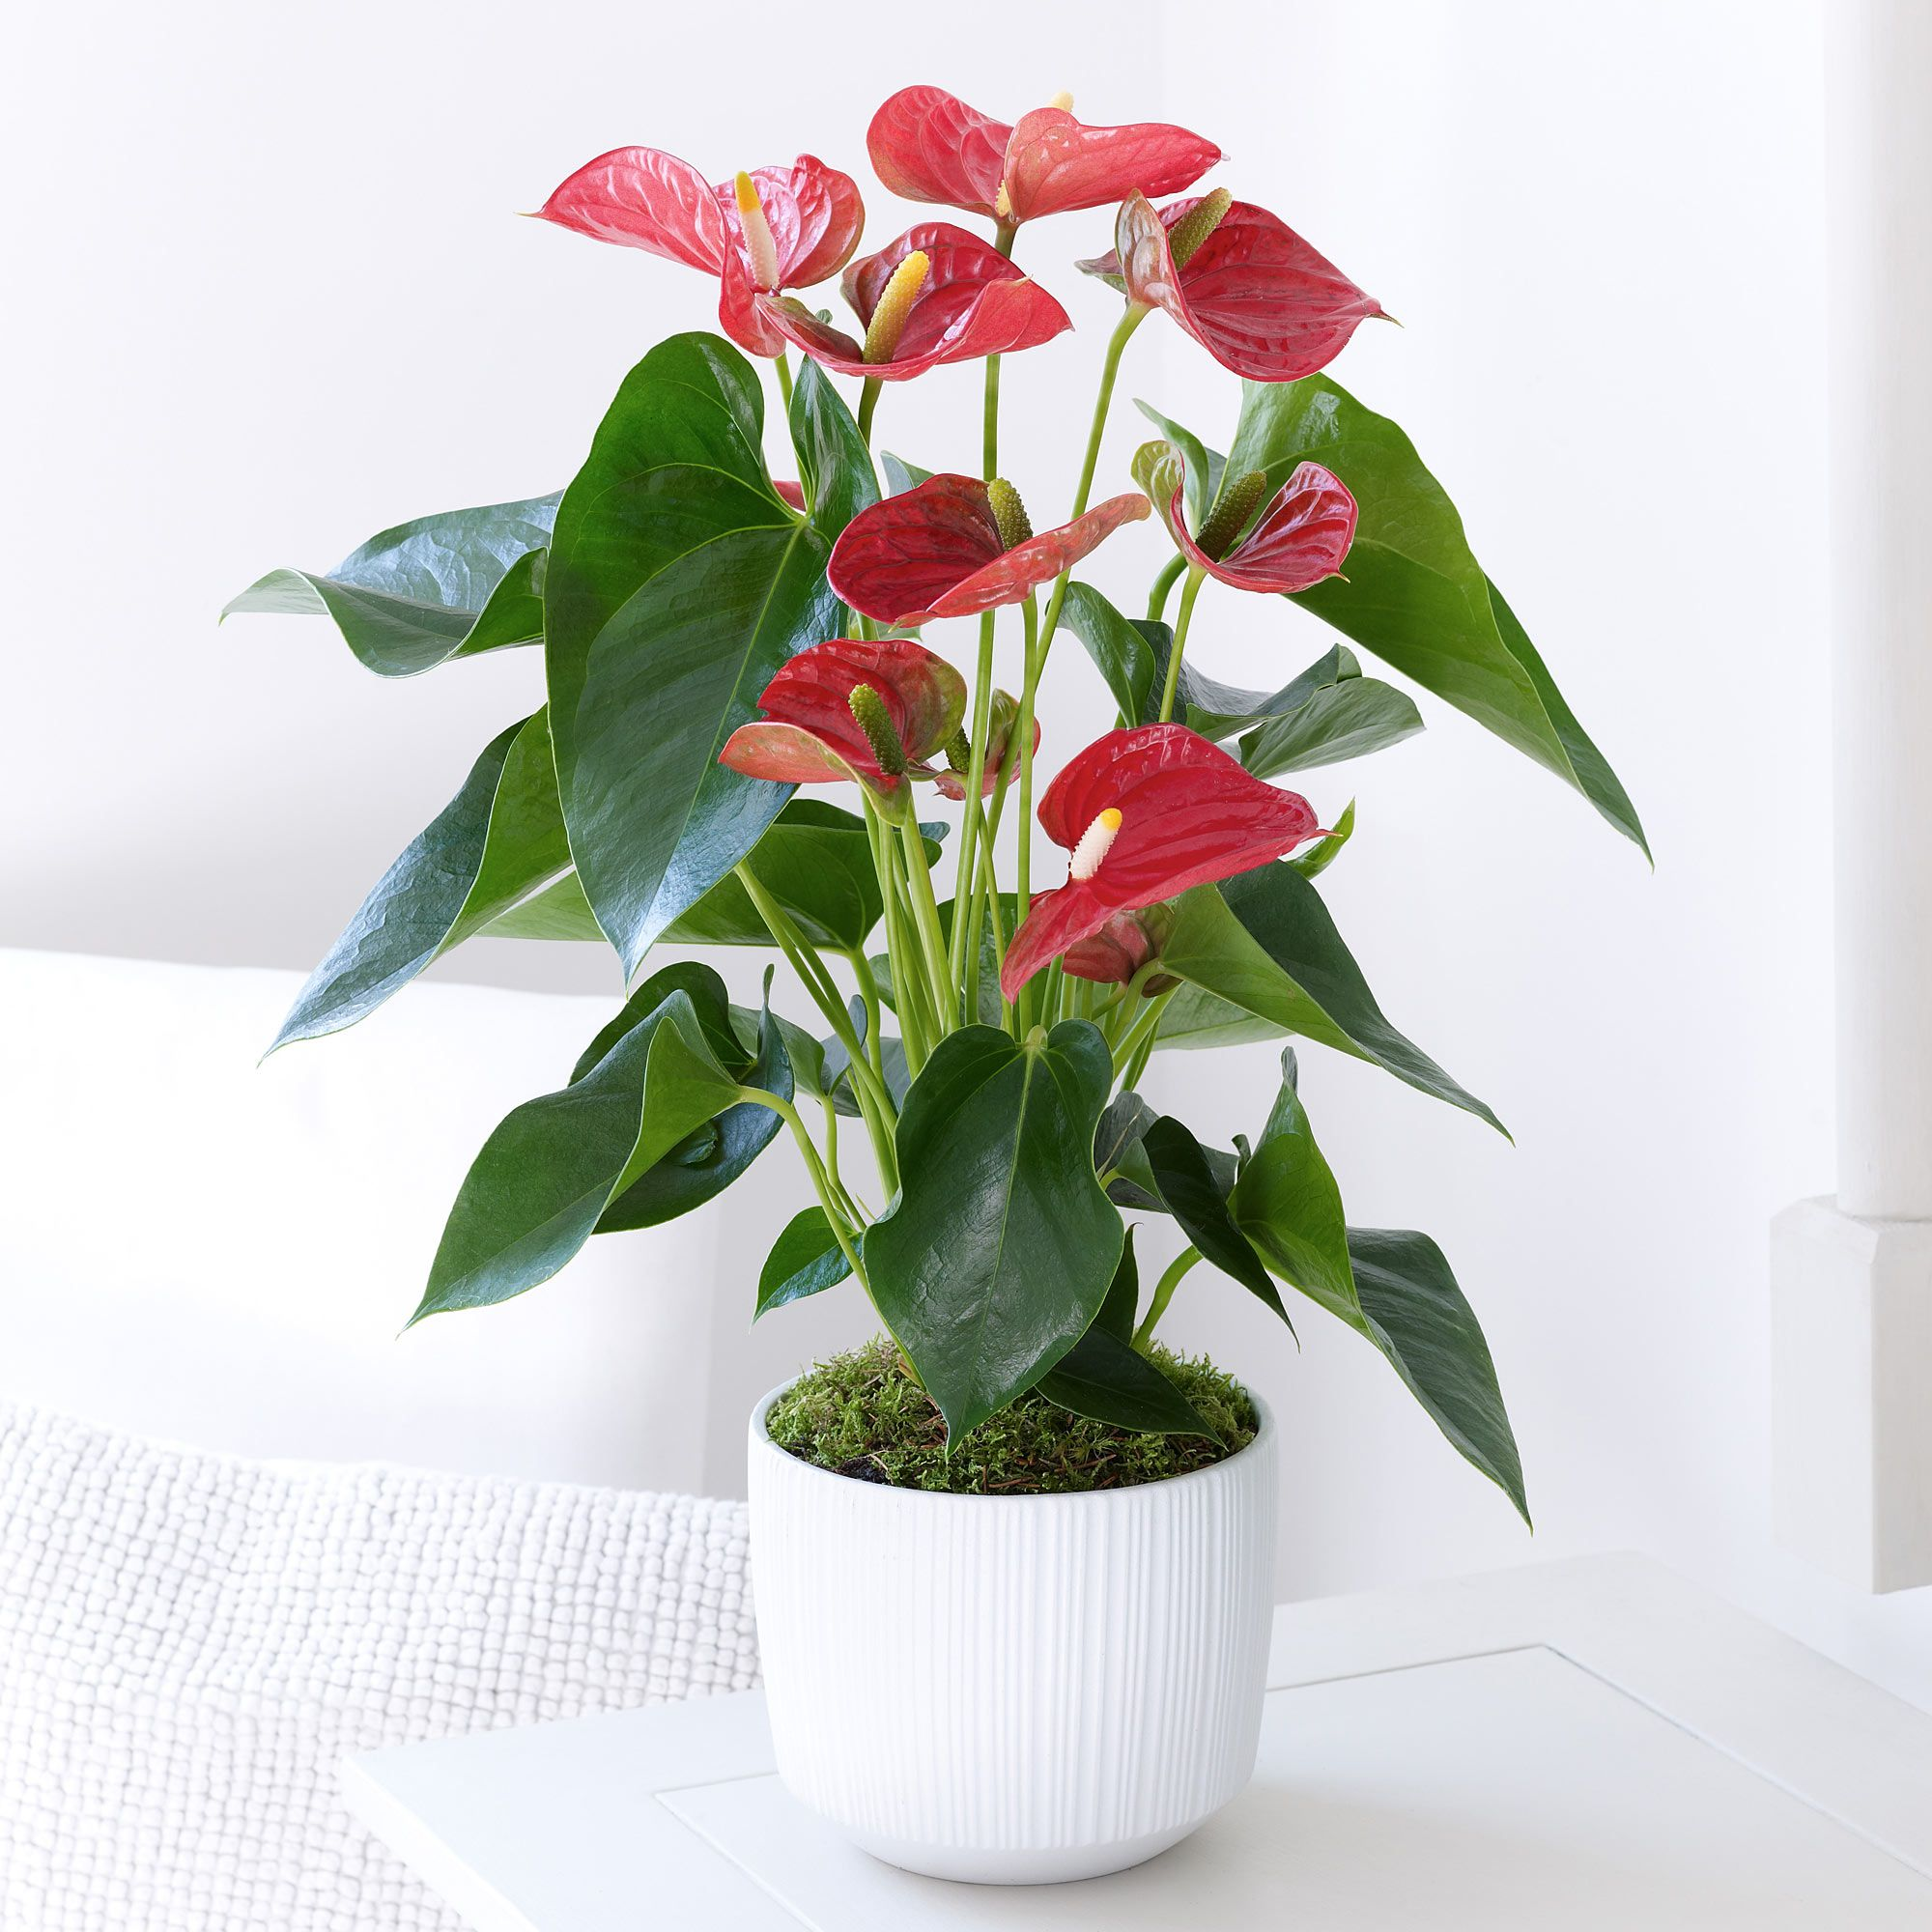 This Red Anthurium Plant Looks Very Exotic Inside The White Ceramic